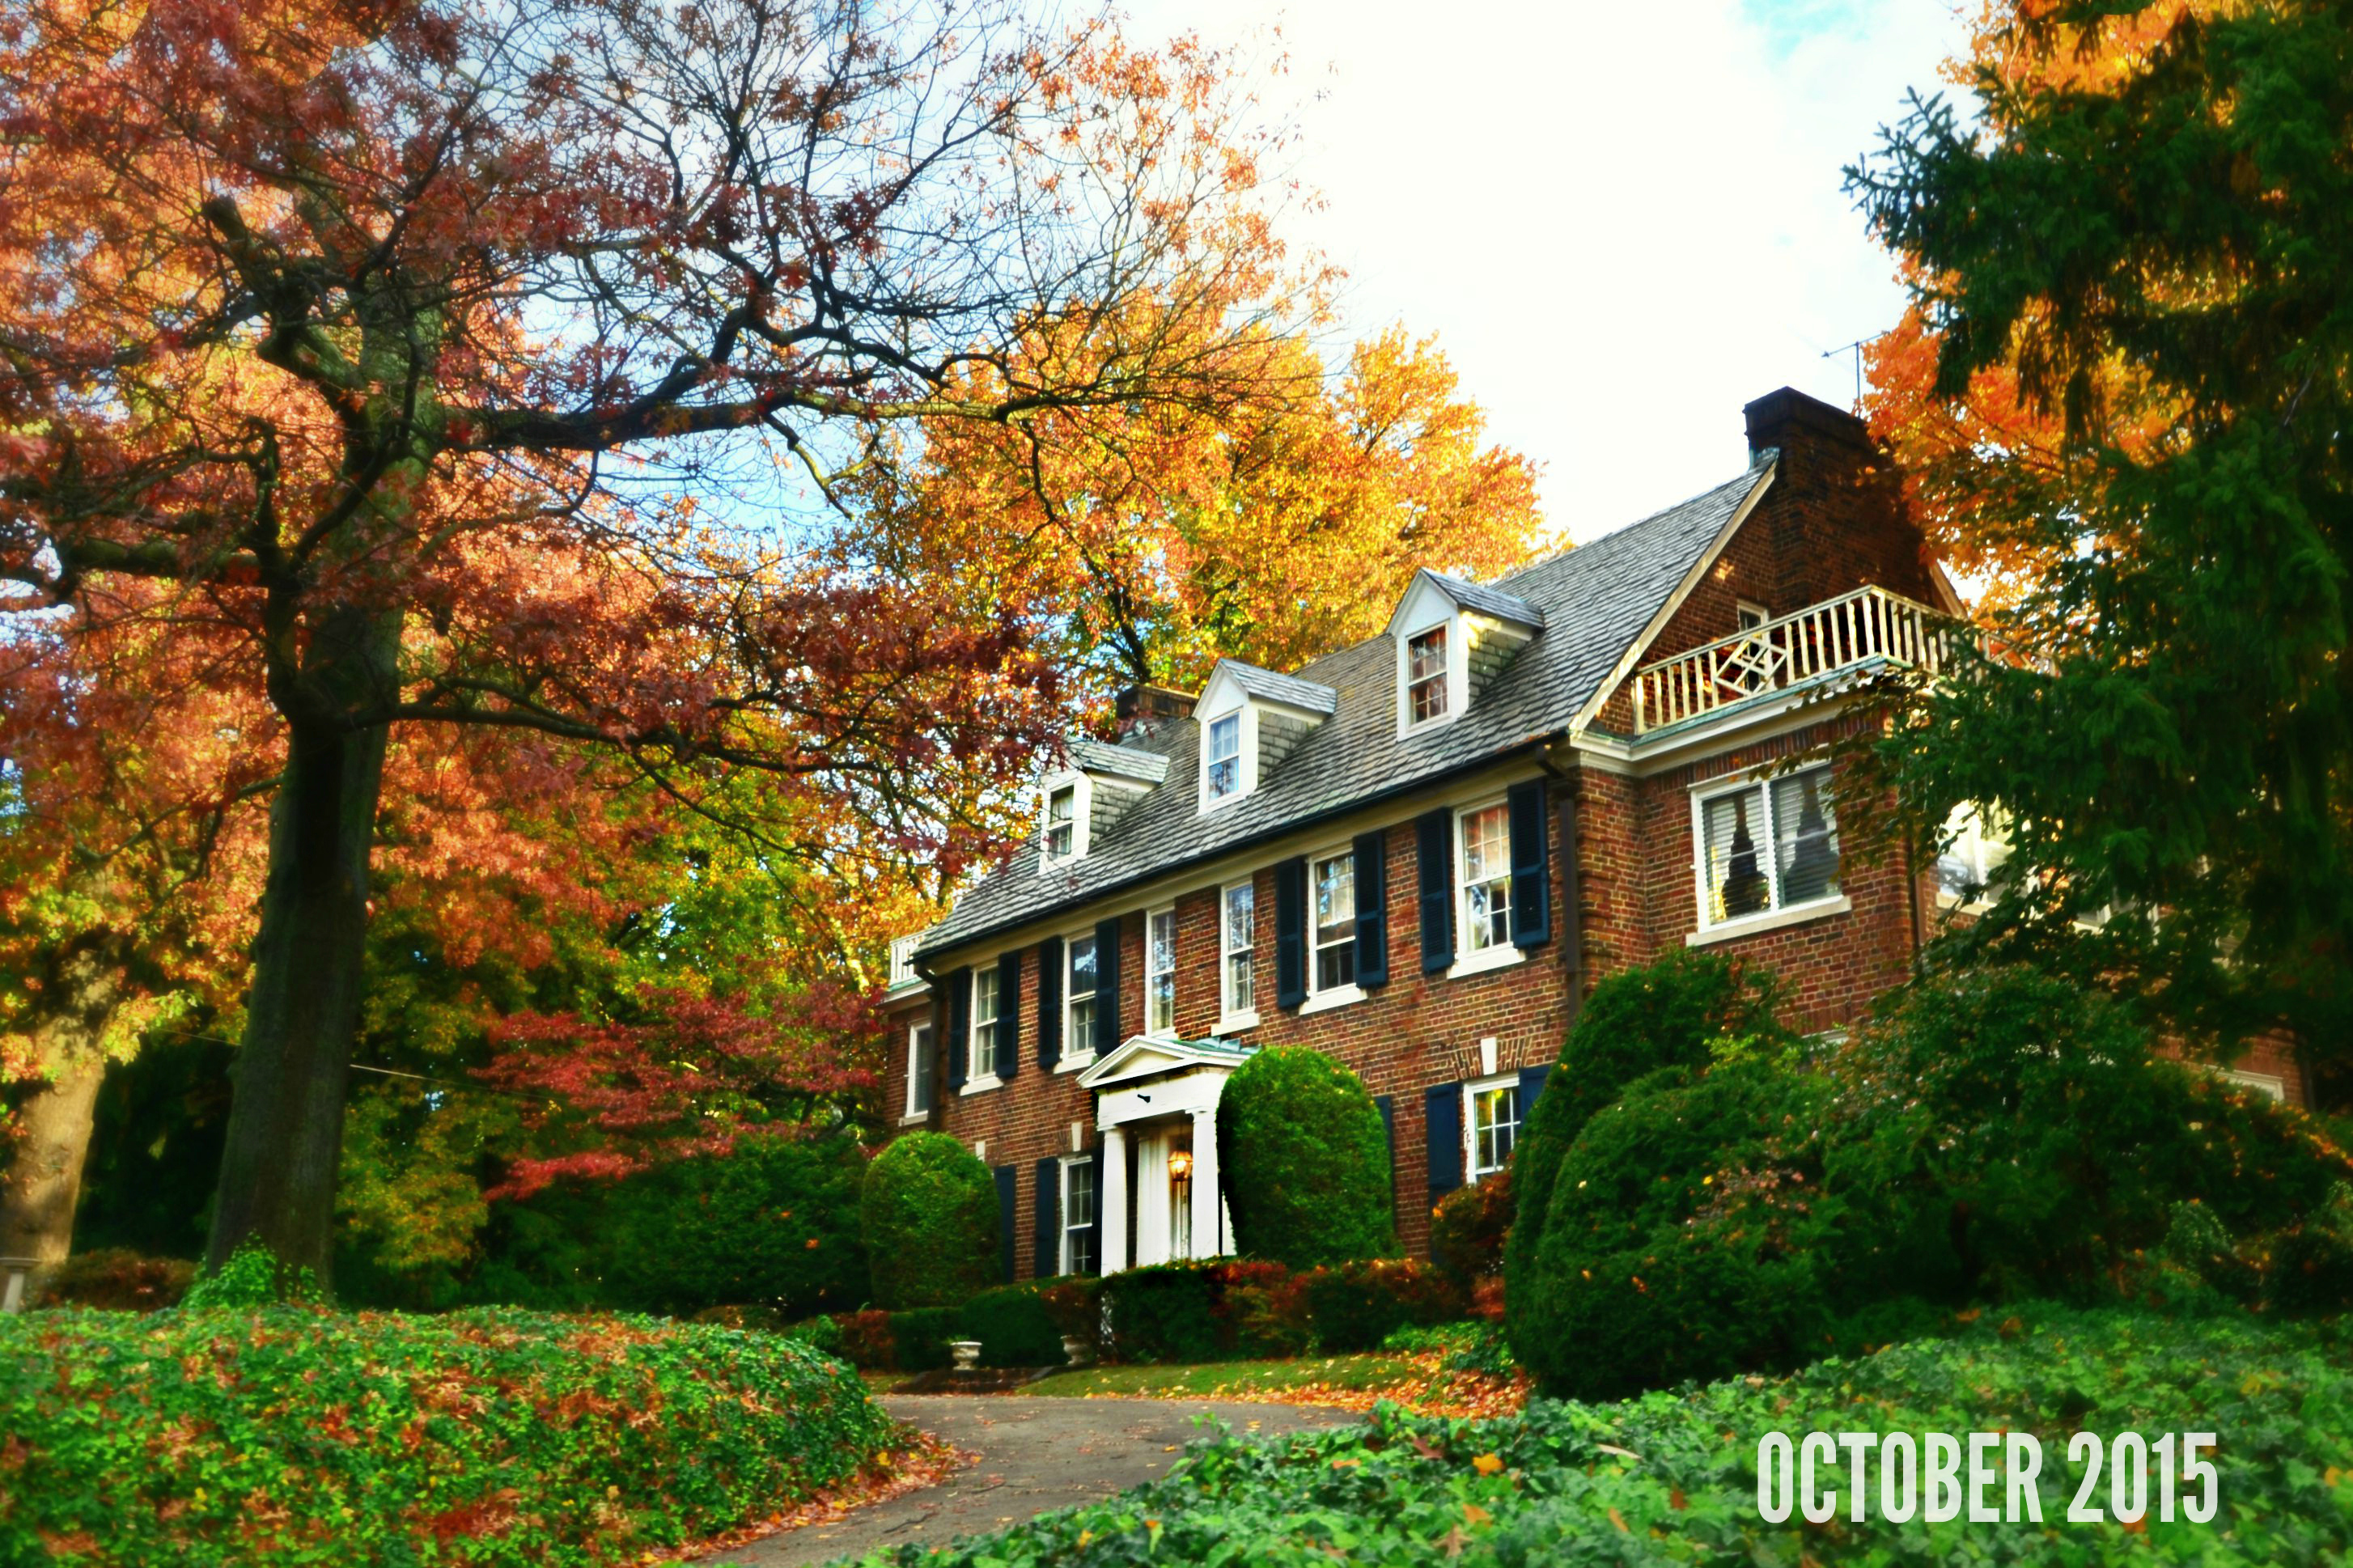 EastFallsLocal 10-29 mcmichael park fall foliage Grace Kelly House from side 5 framed wider 2 px focus OCT